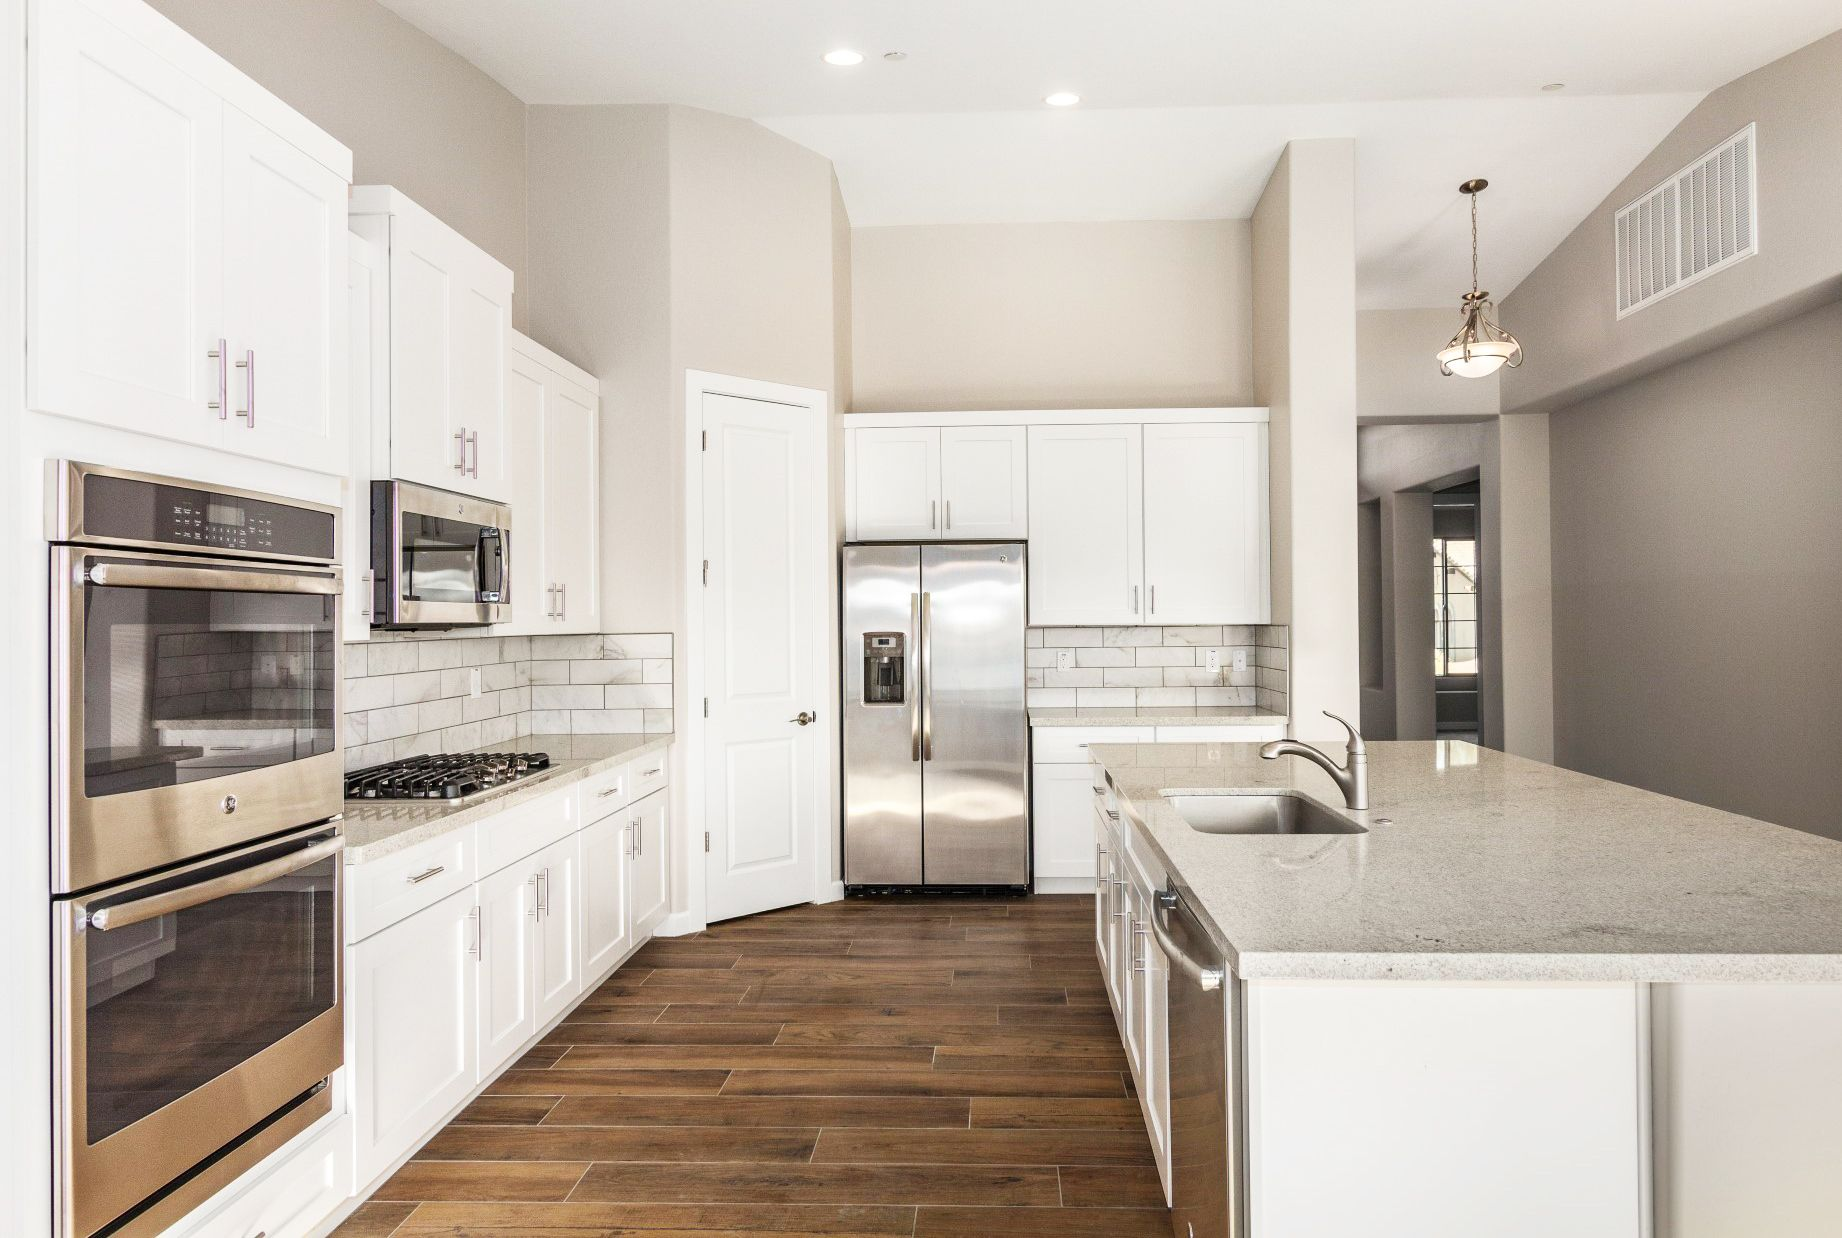 This All White Kitchen White Cabinets And Light Colored Countertops Is Super Trendy And Fashionable With Images Charming Kitchen All White Kitchen